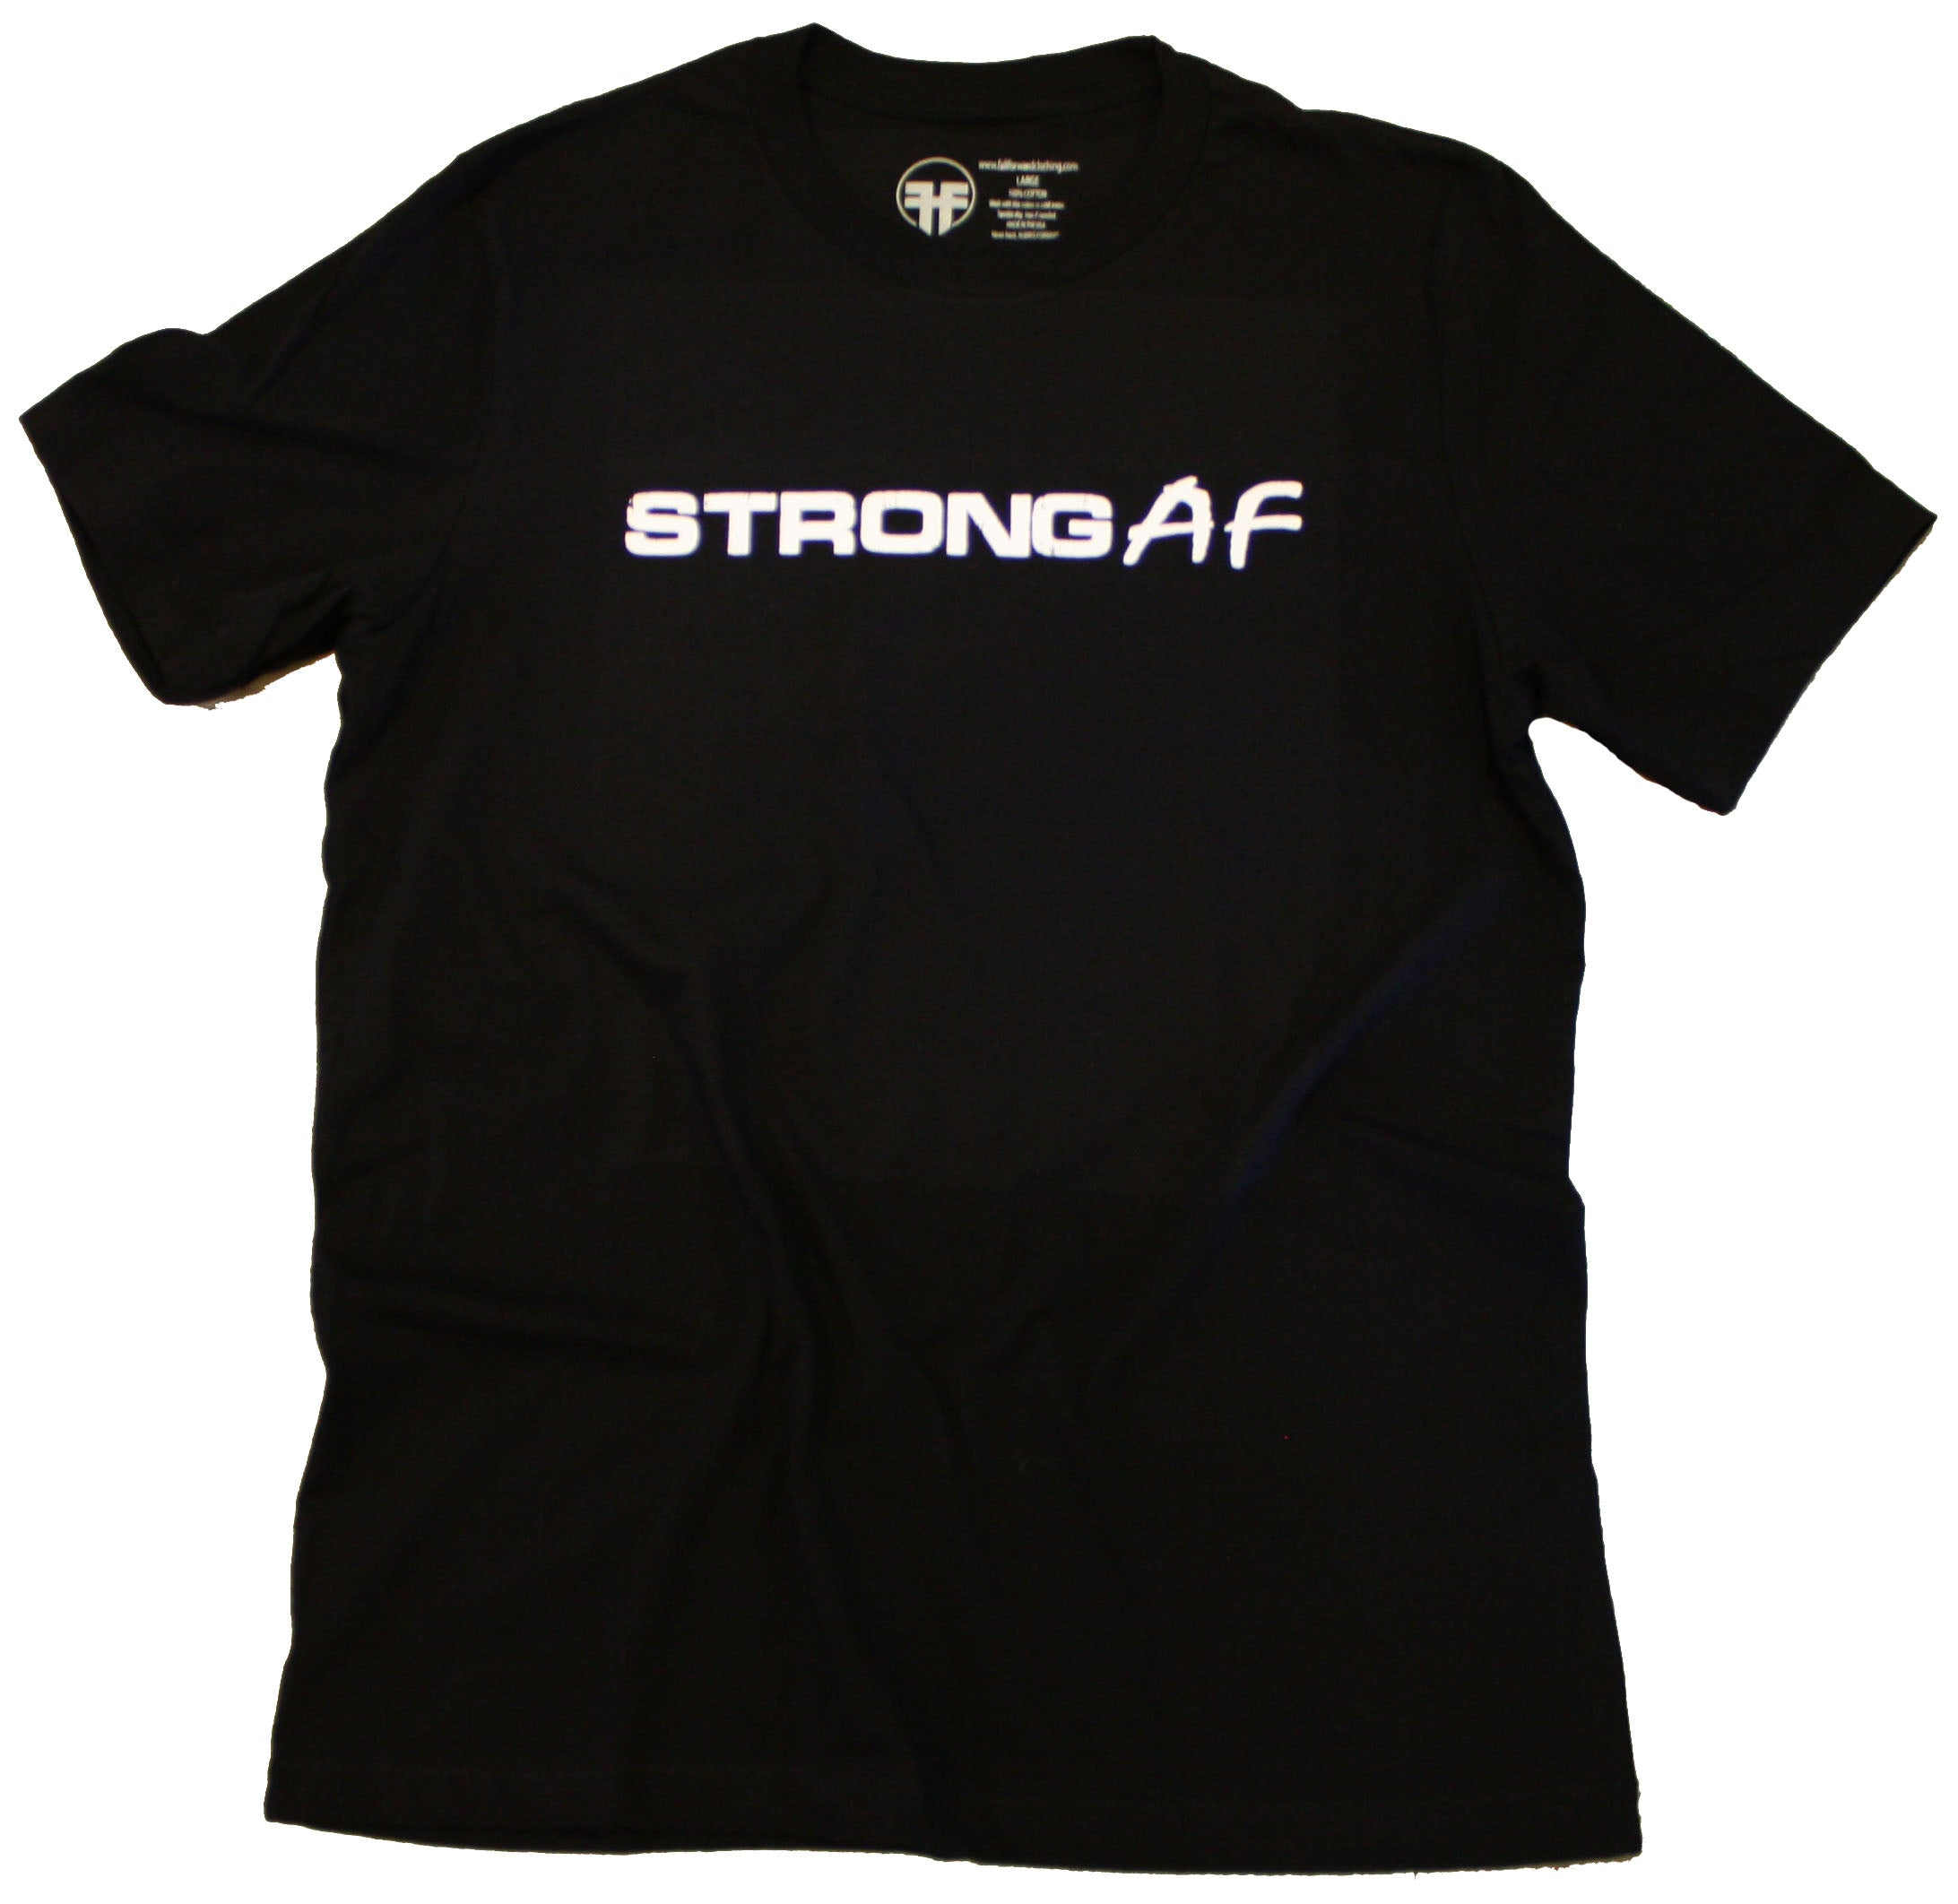 strong af black tee shirt gym planet fitness anytime fitness fall forward clothing premium